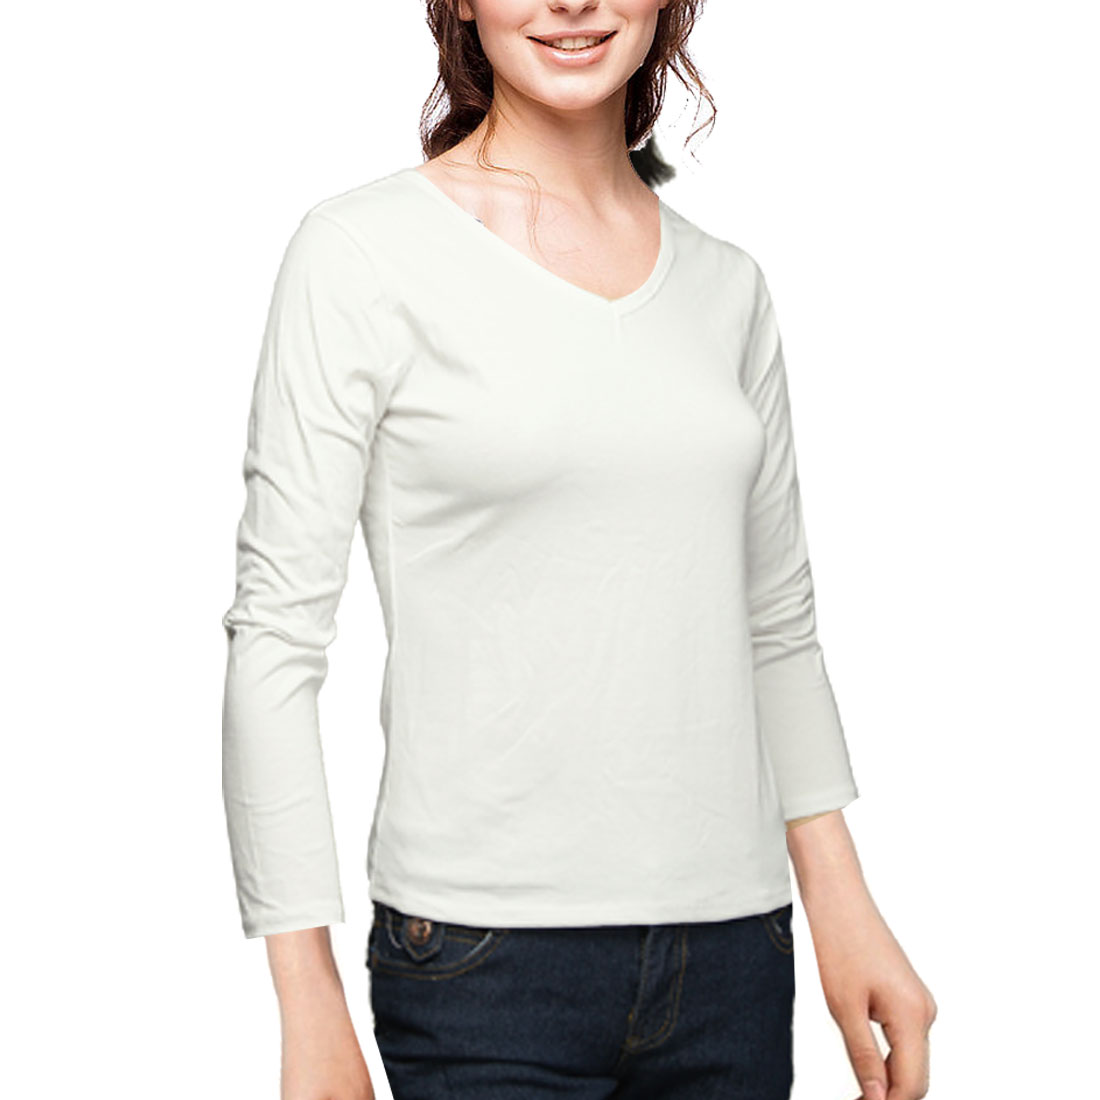 Lady Stretch U Neck Long Sleeves Spring T-Shirt Top